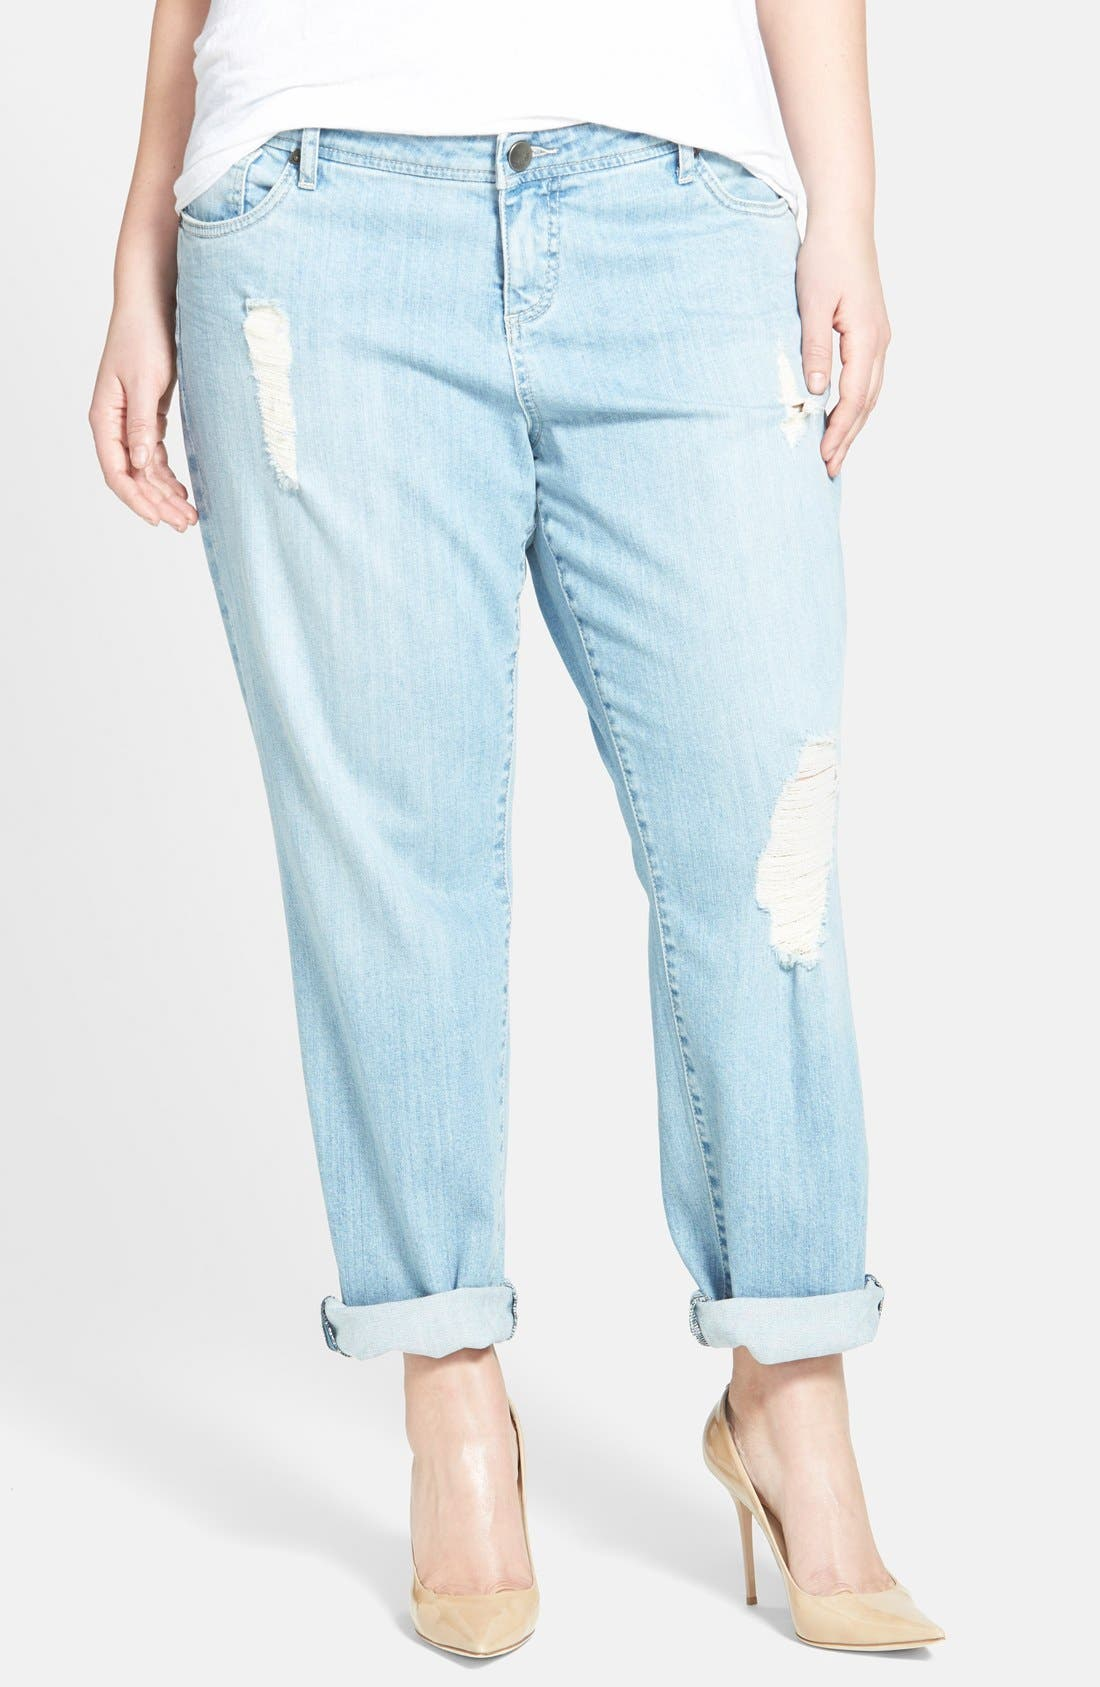 Main Image - KUT from the Kloth Distressed Boyfriend Jeans (Slick) (Plus Size)